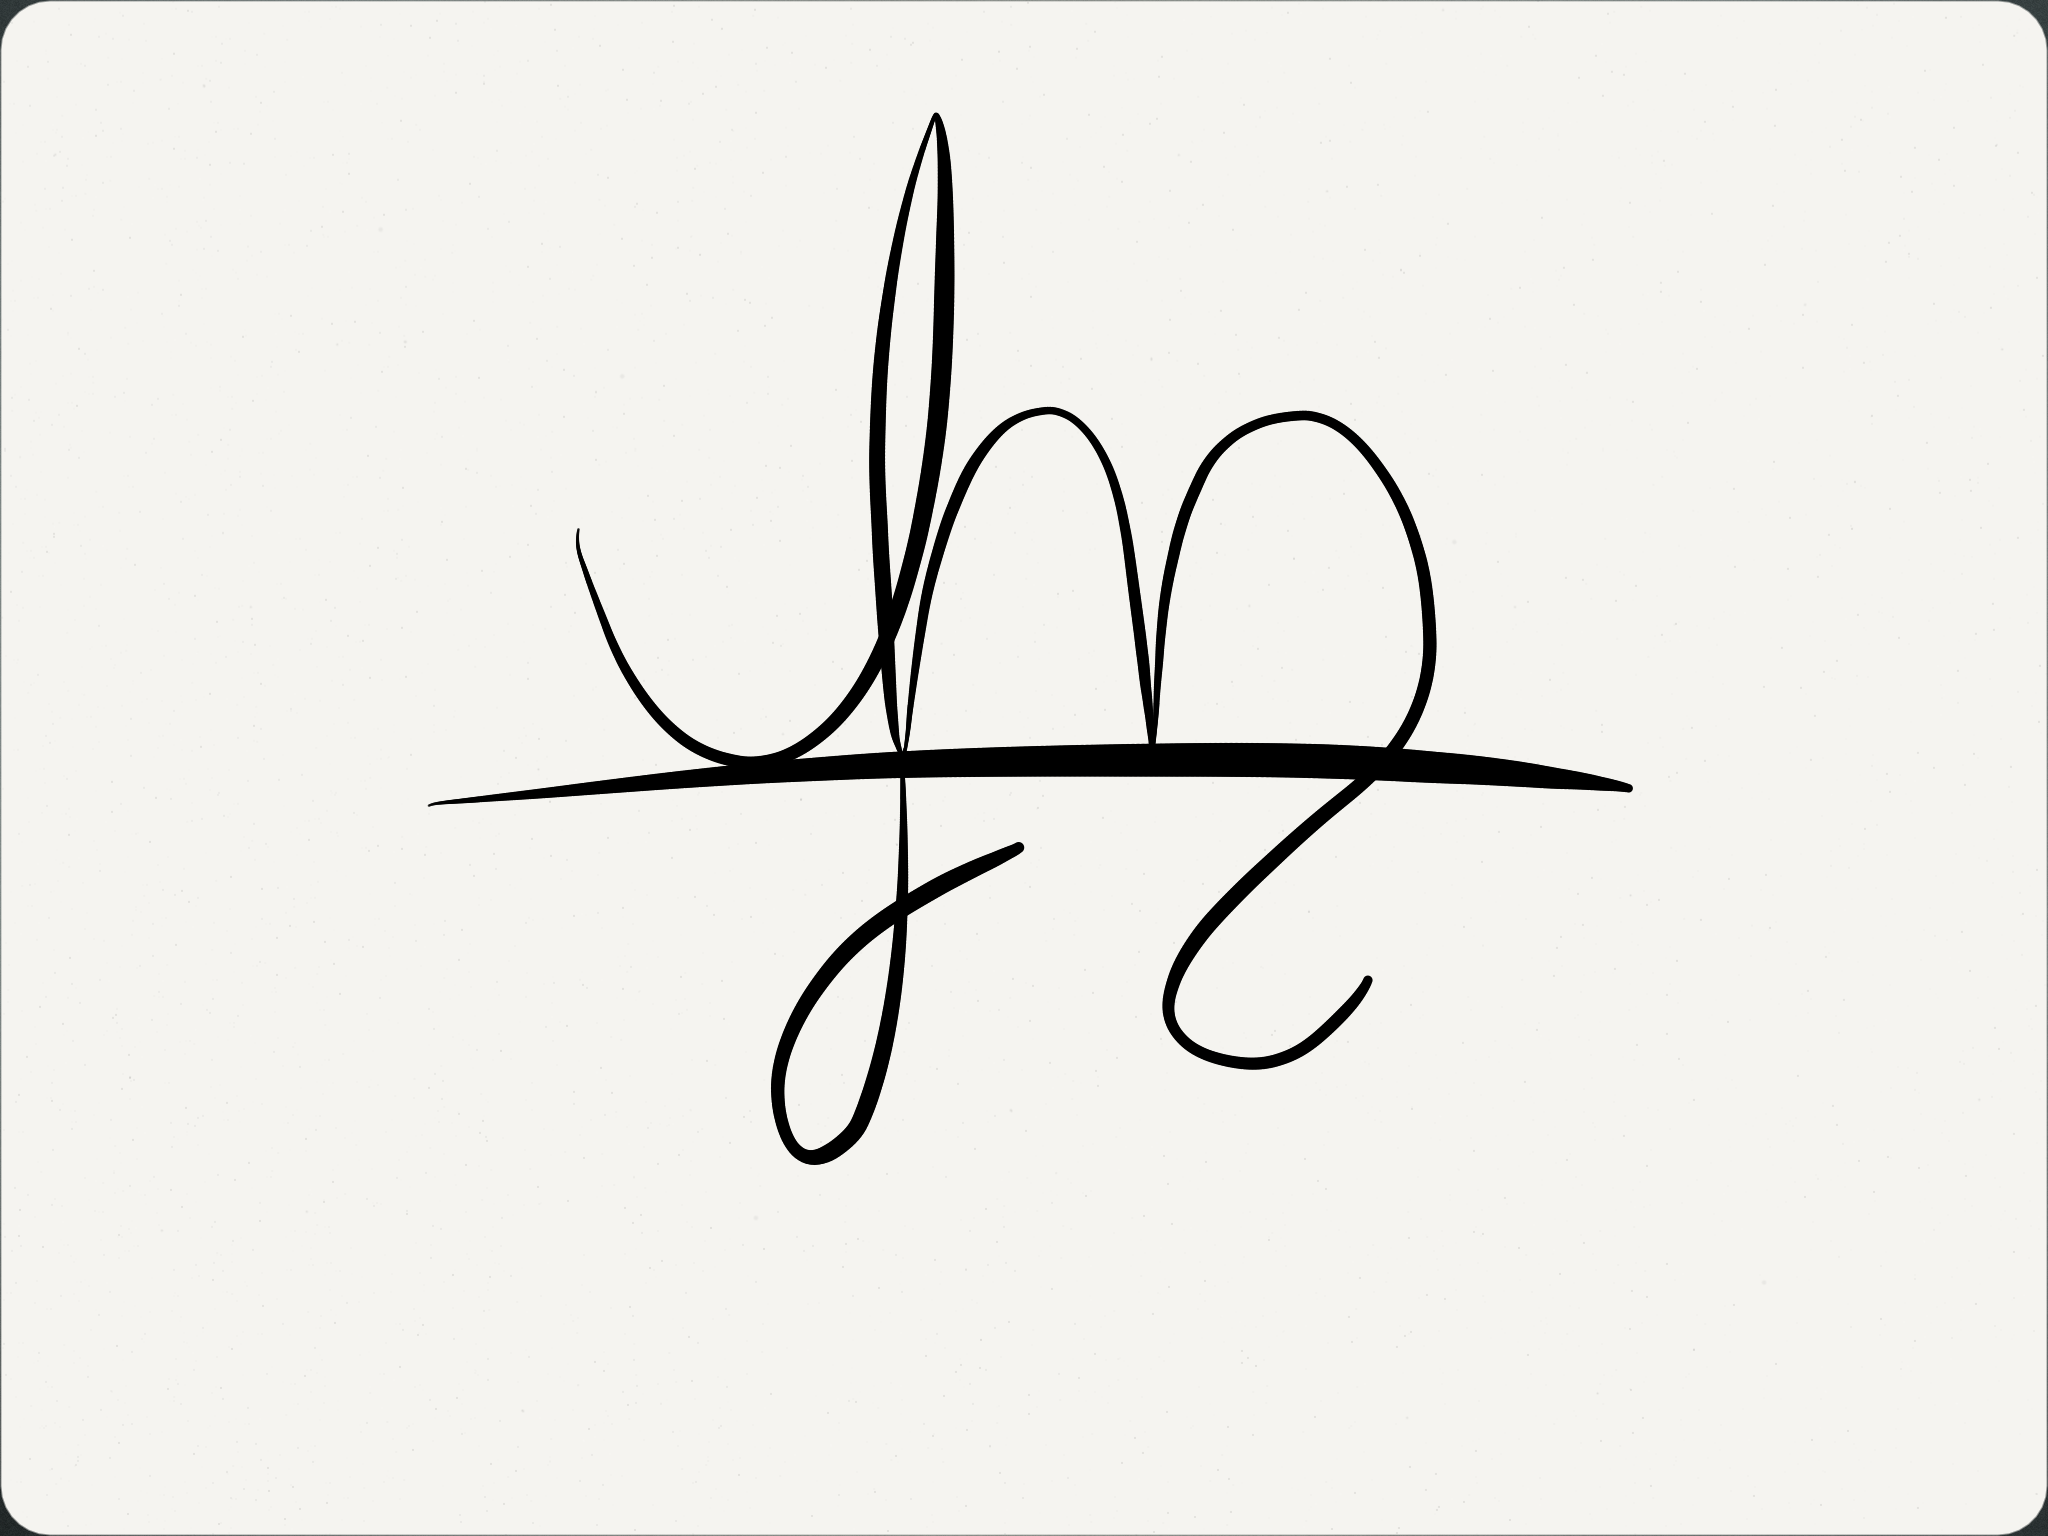 Real sigils have curves! Seriously though, my fascination with calligraphy played a small role.